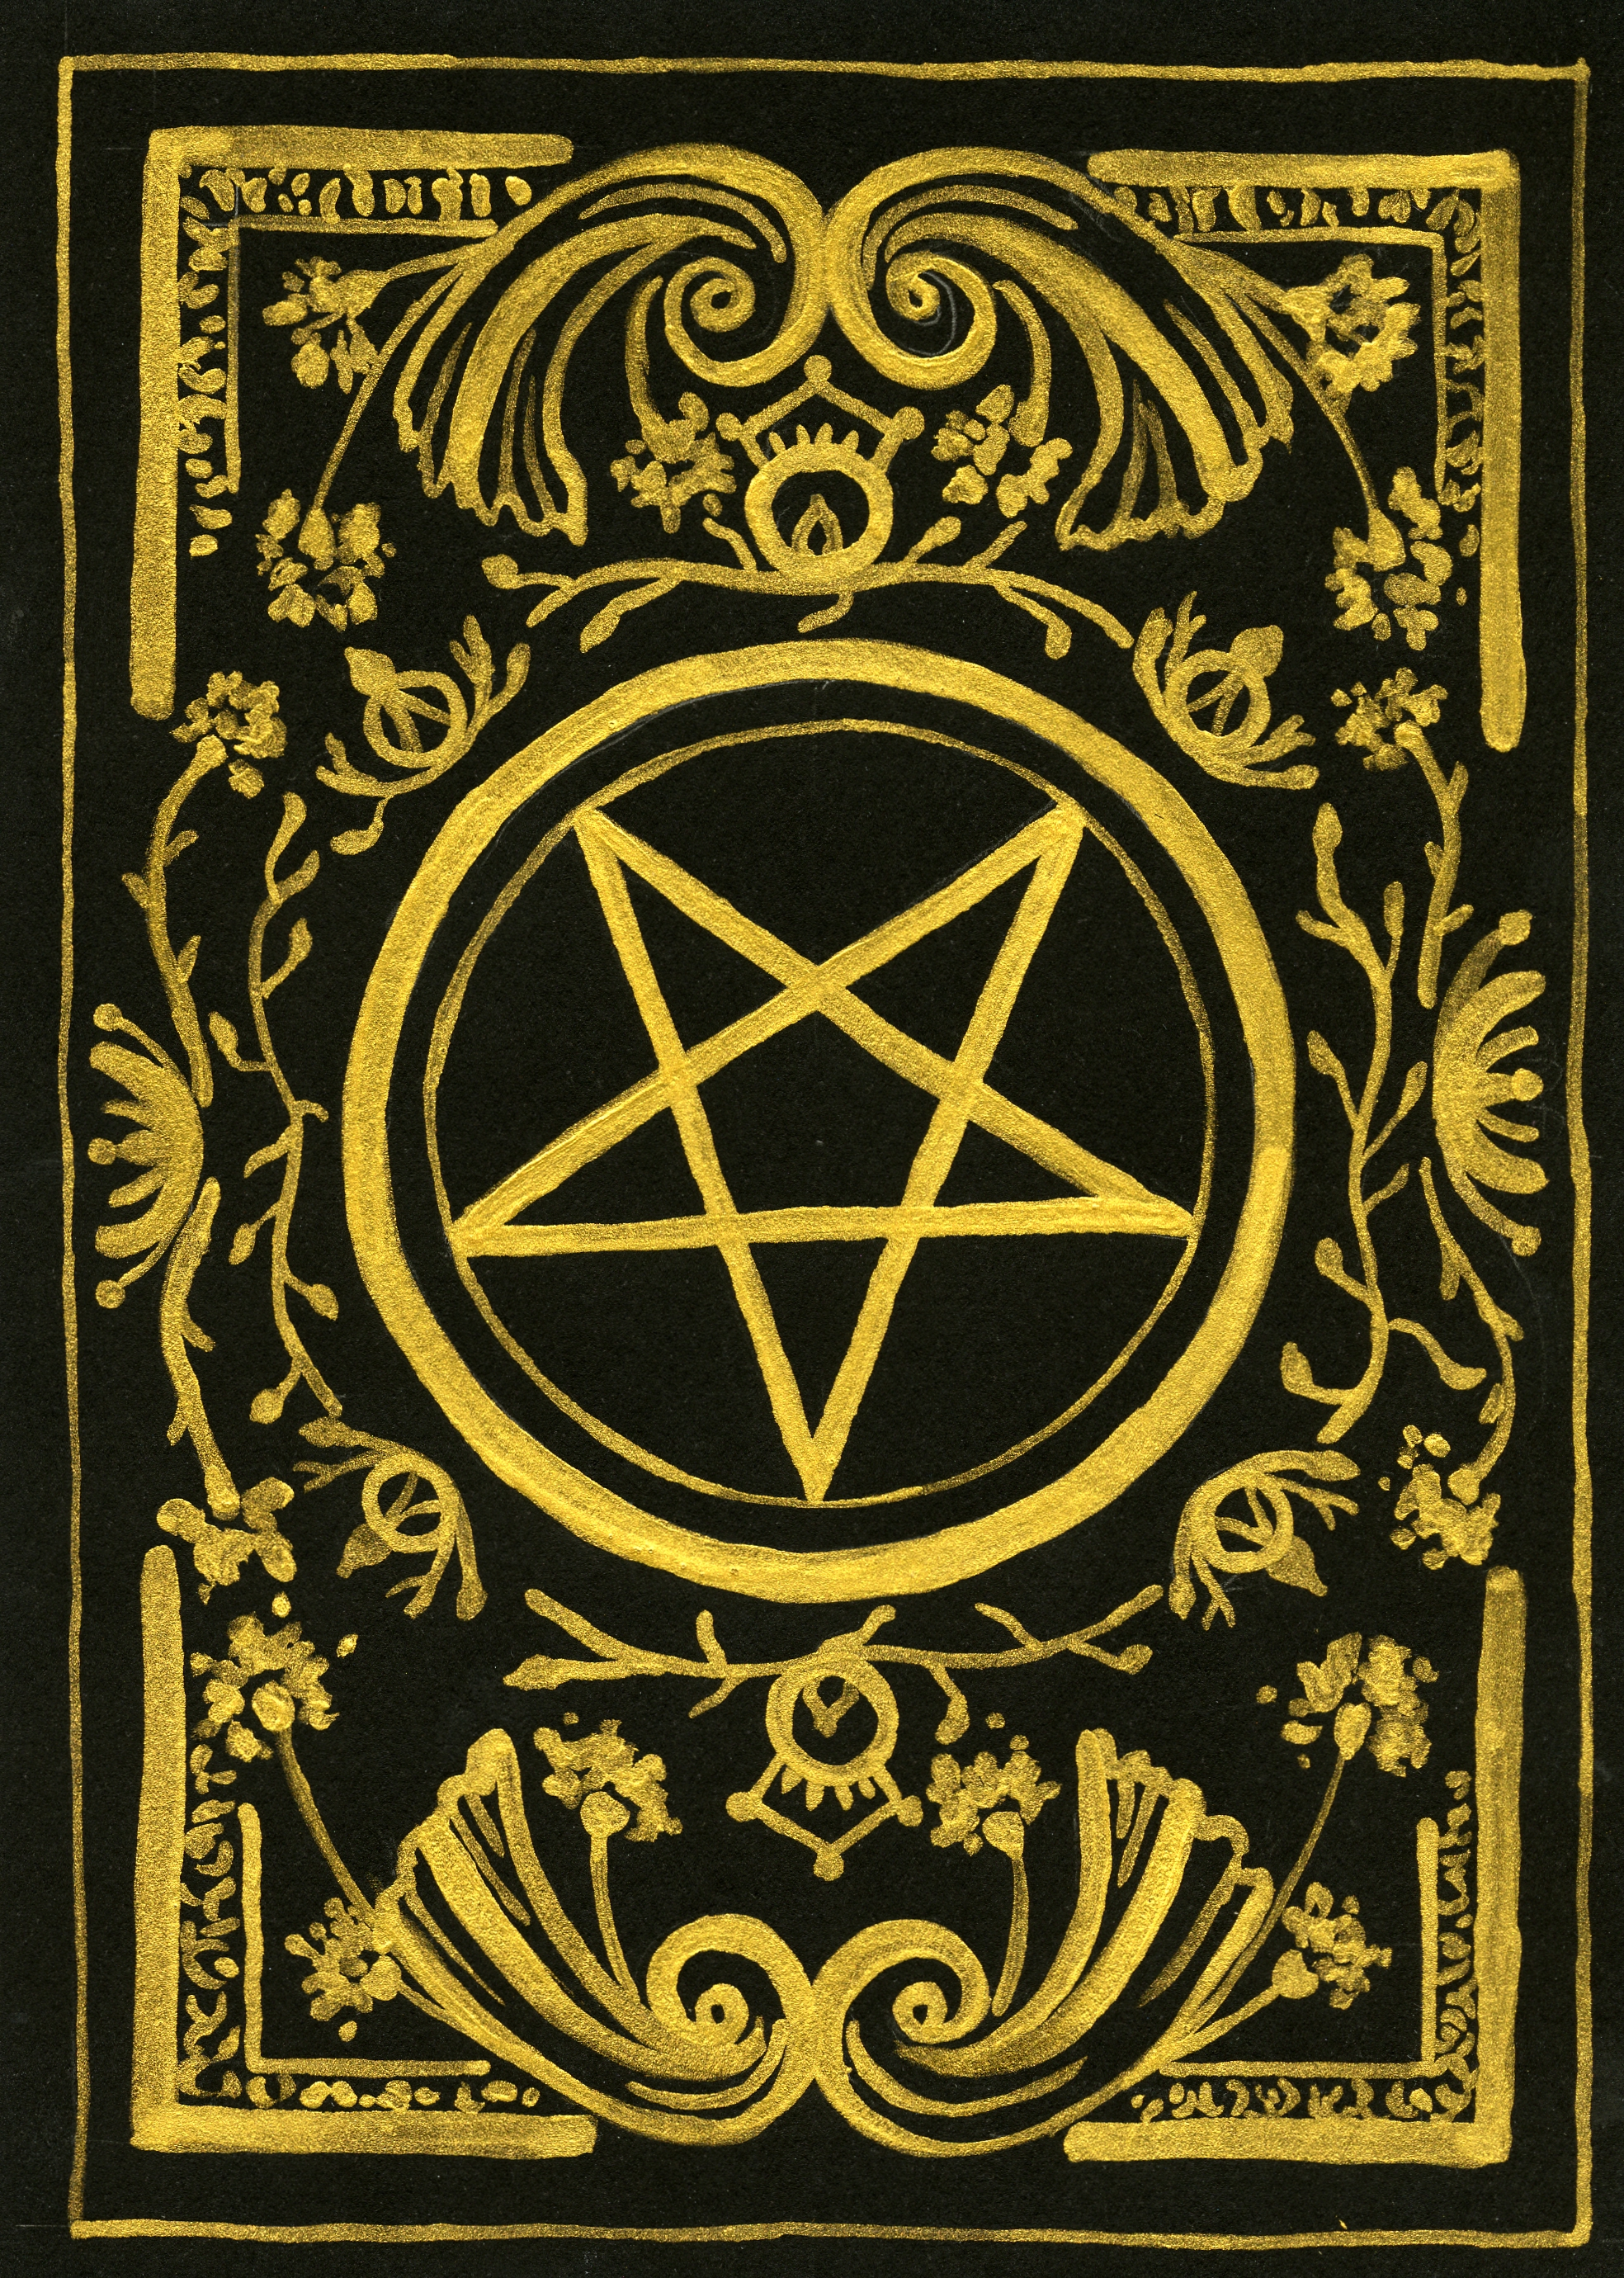 Sarah Eichhorn - Ace of Pentacles